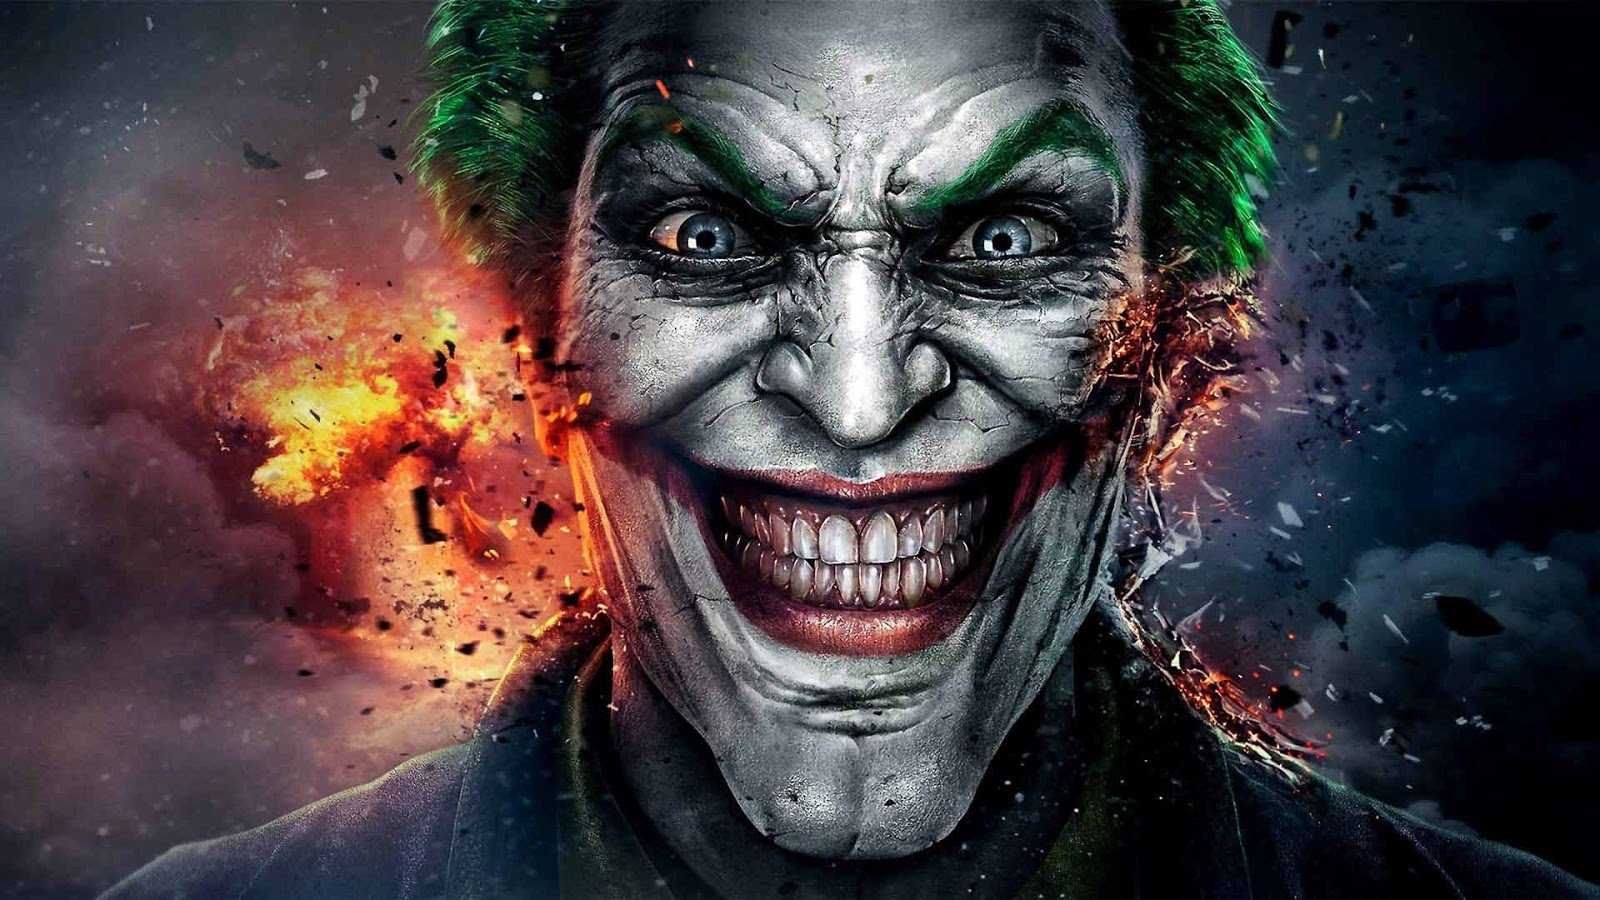 hd wallpapers pics joker hd wallpapers hd wallpapers pics joker 1600x900